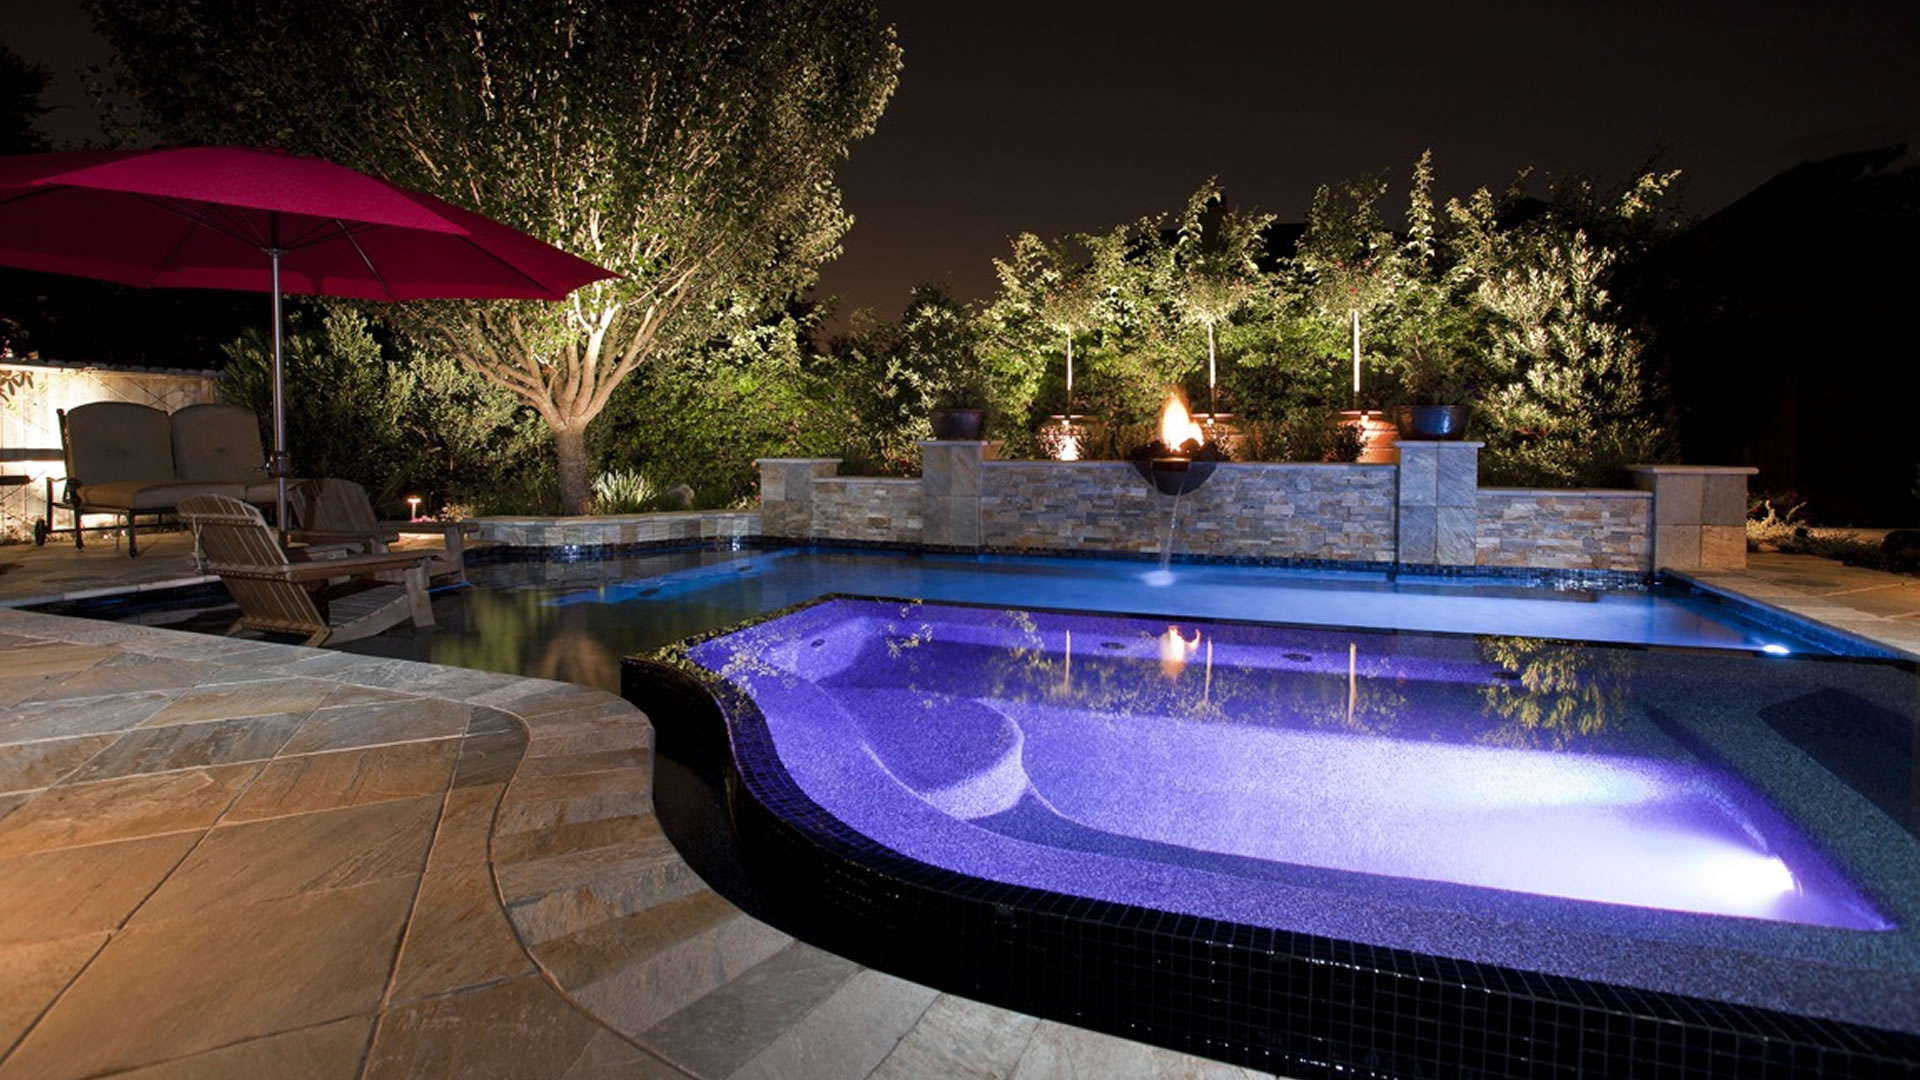 Custom Design Pools custom swimming pool designs pool landscape ideas fetching custom swimming pools and designs Signature Project Tuscan Elegence By Custom Design Pools Landscaping Houston Luxury Pool Designer And Pool Builder